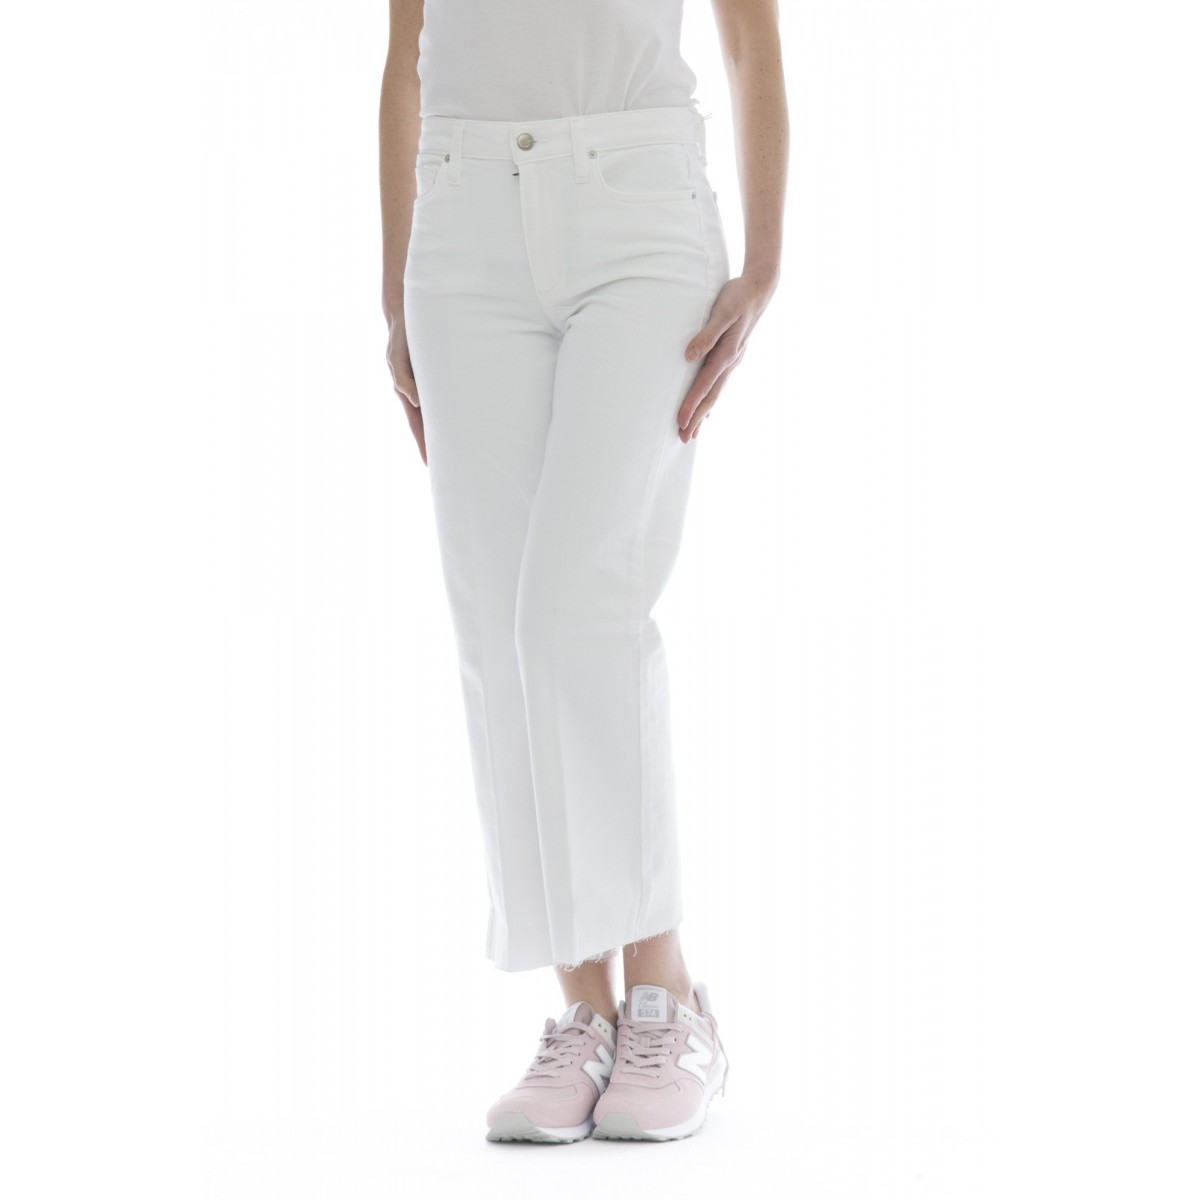 Jeans - The wyatt hr crop gamba larga dritto